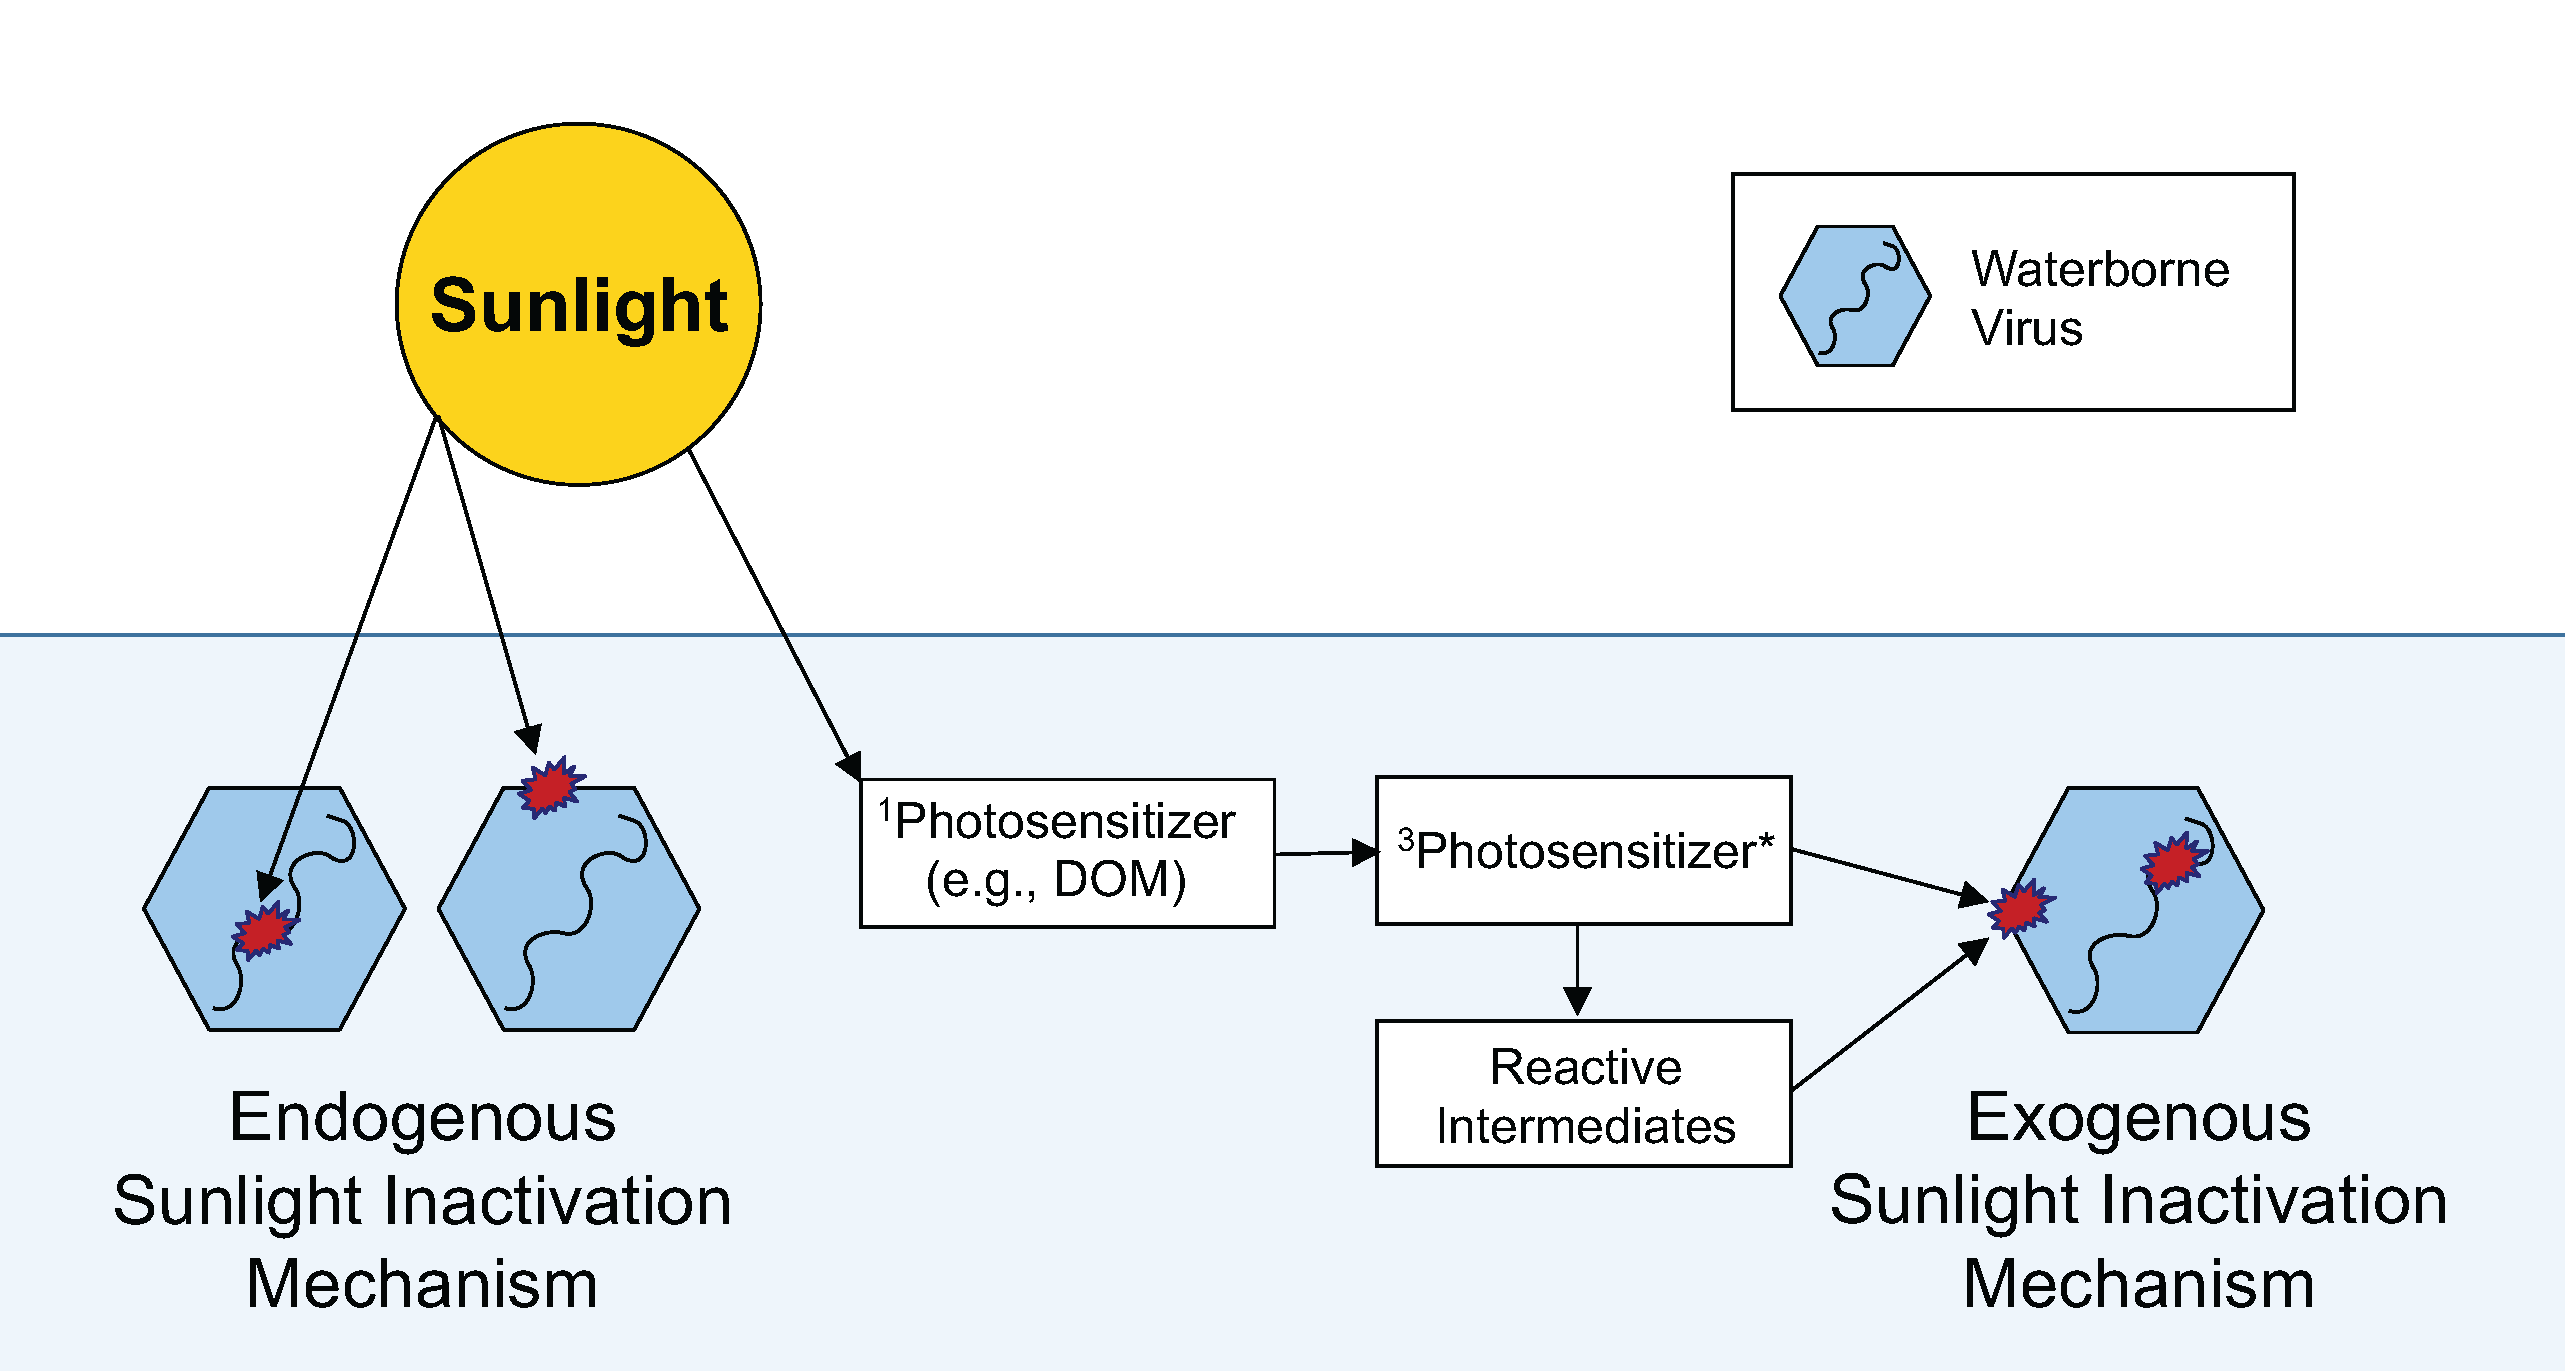 Diagram of water bacteria and sunlight